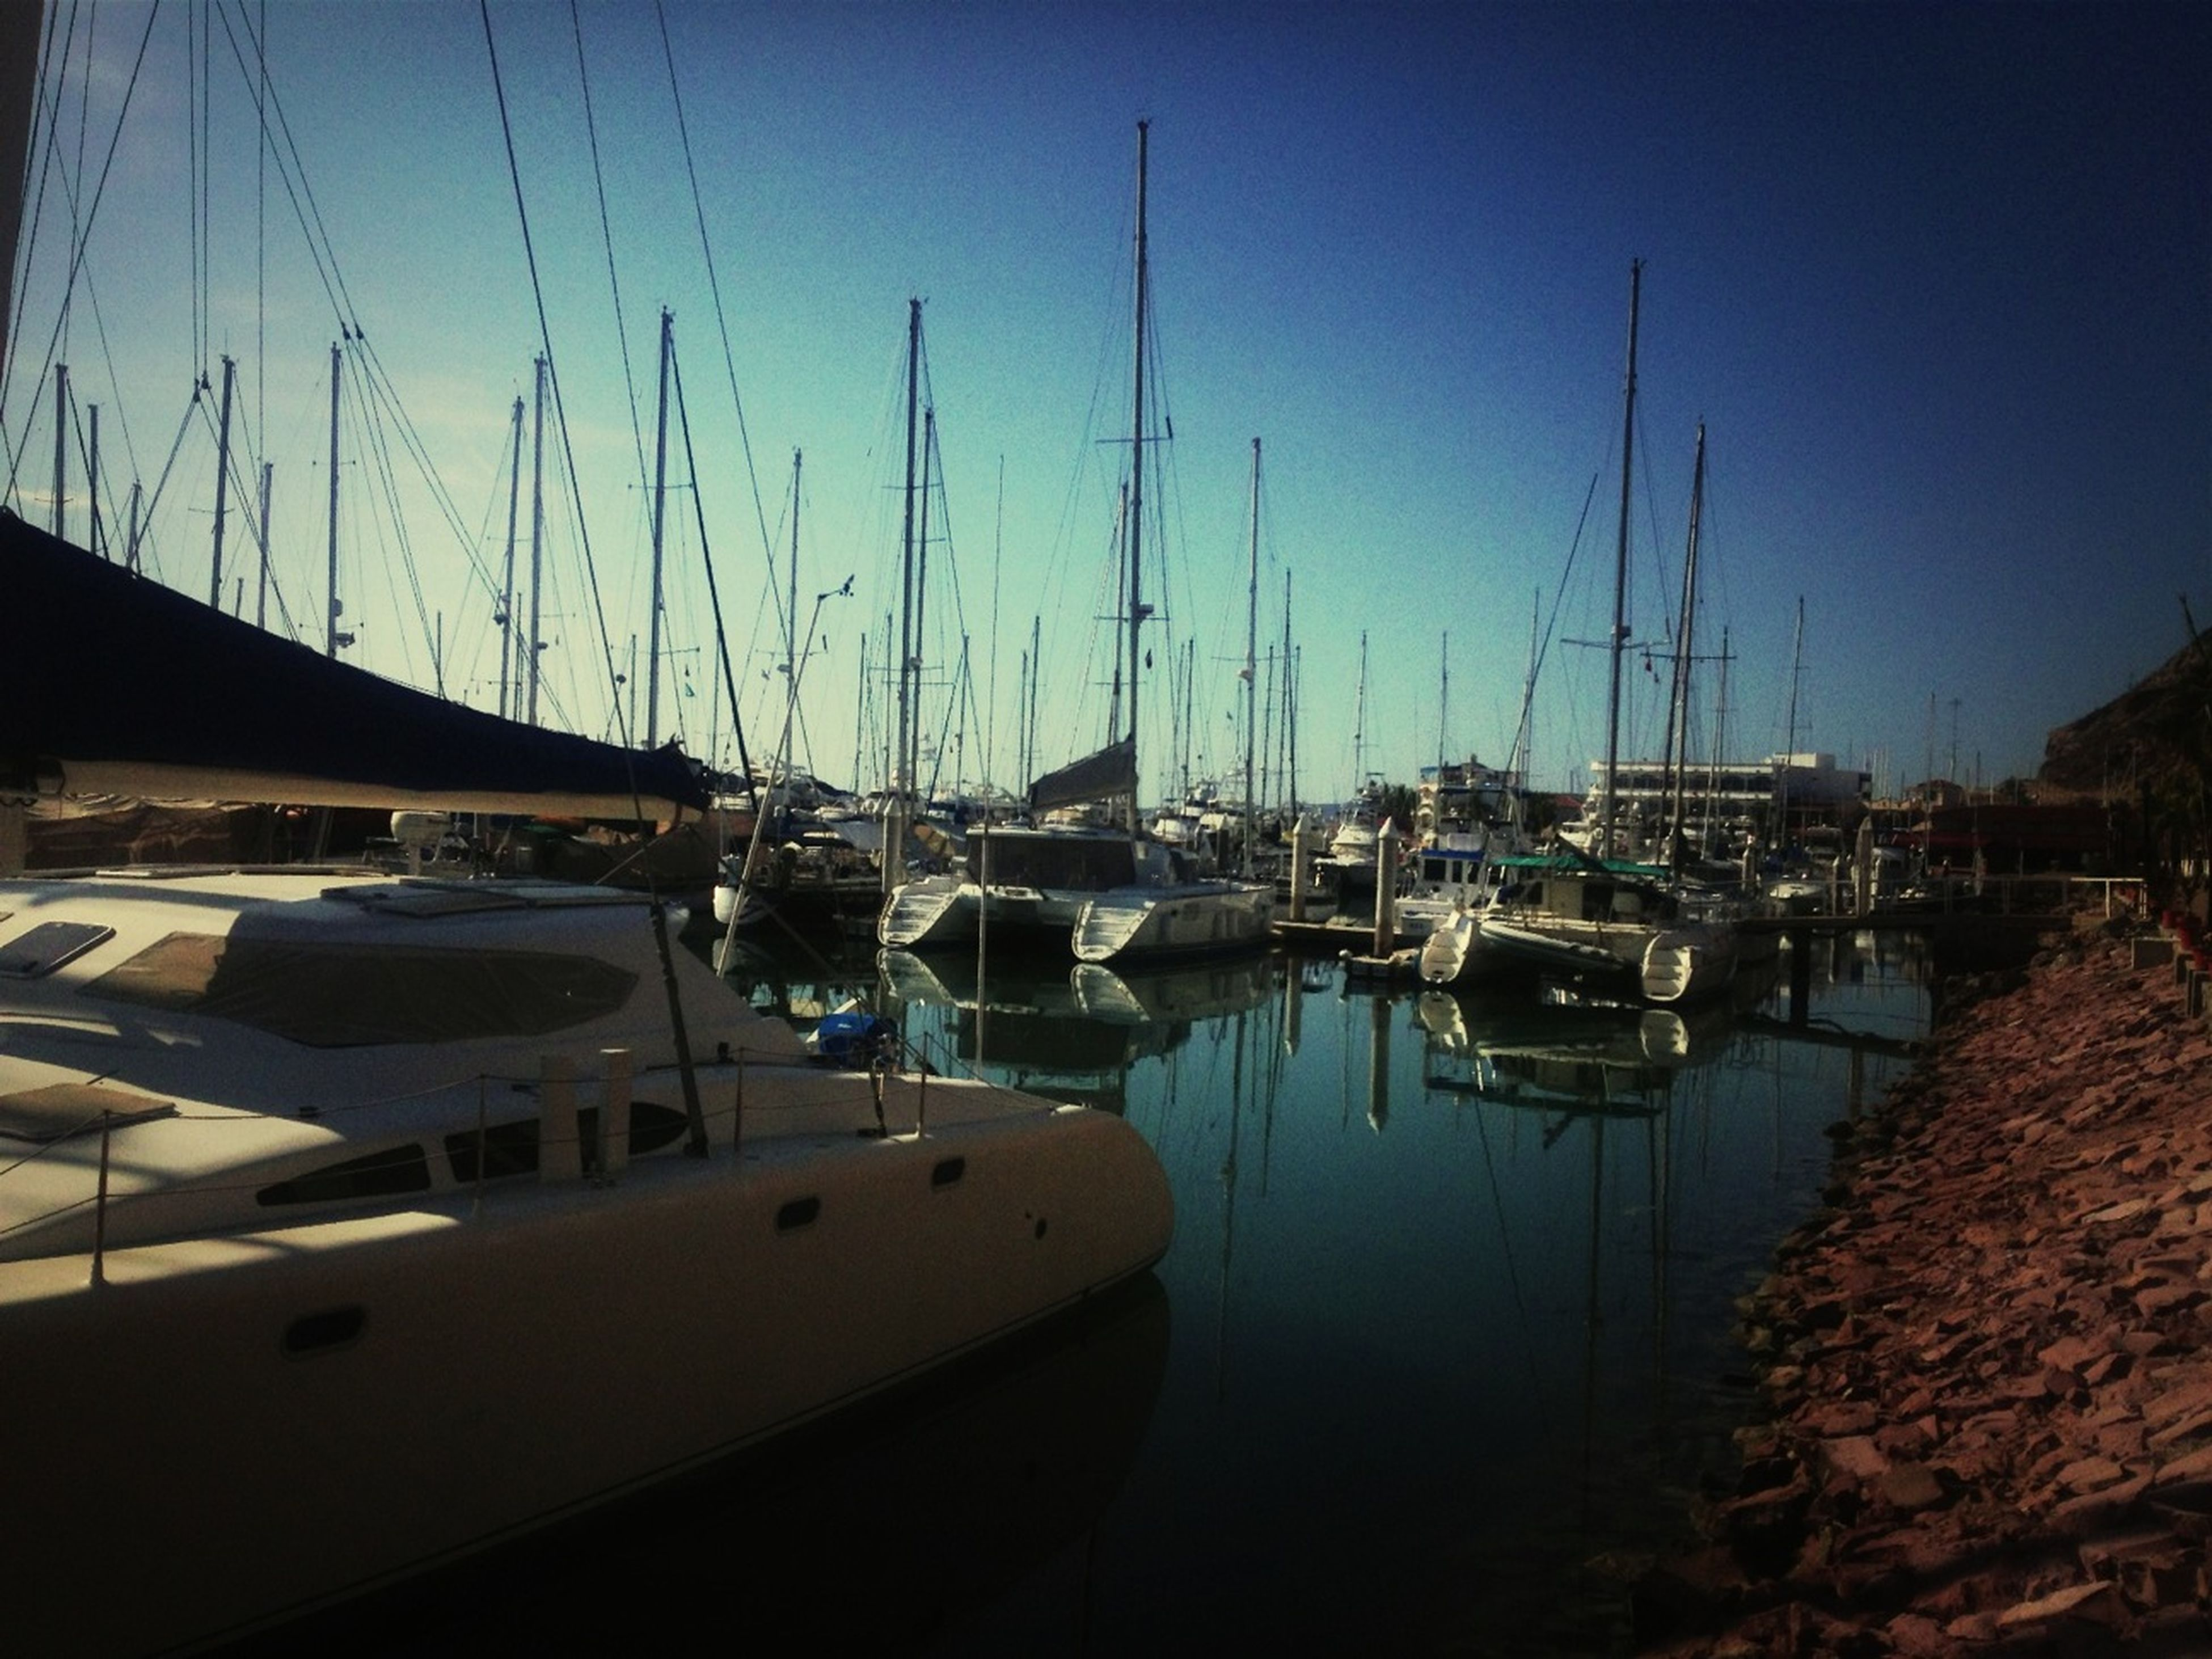 nautical vessel, moored, boat, transportation, water, mode of transport, mast, harbor, sailboat, sea, reflection, sky, waterfront, marina, blue, clear sky, yacht, nature, in a row, group of objects